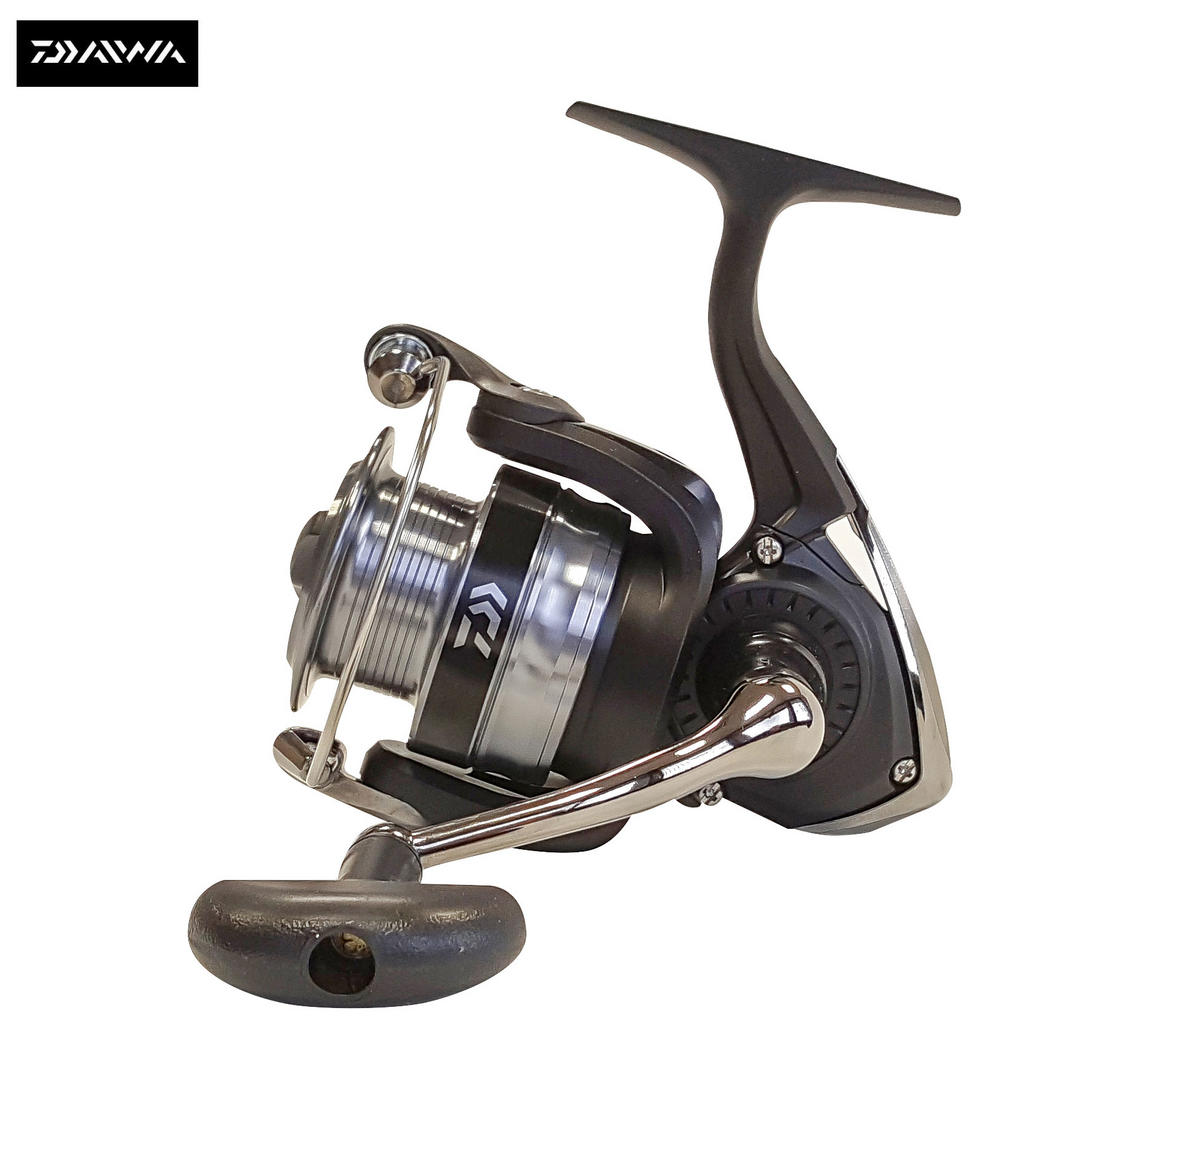 EX DISPLAY  Daiwa RX Spinning Reel 2000 BI Model No. RX2000 BI WITH LINE